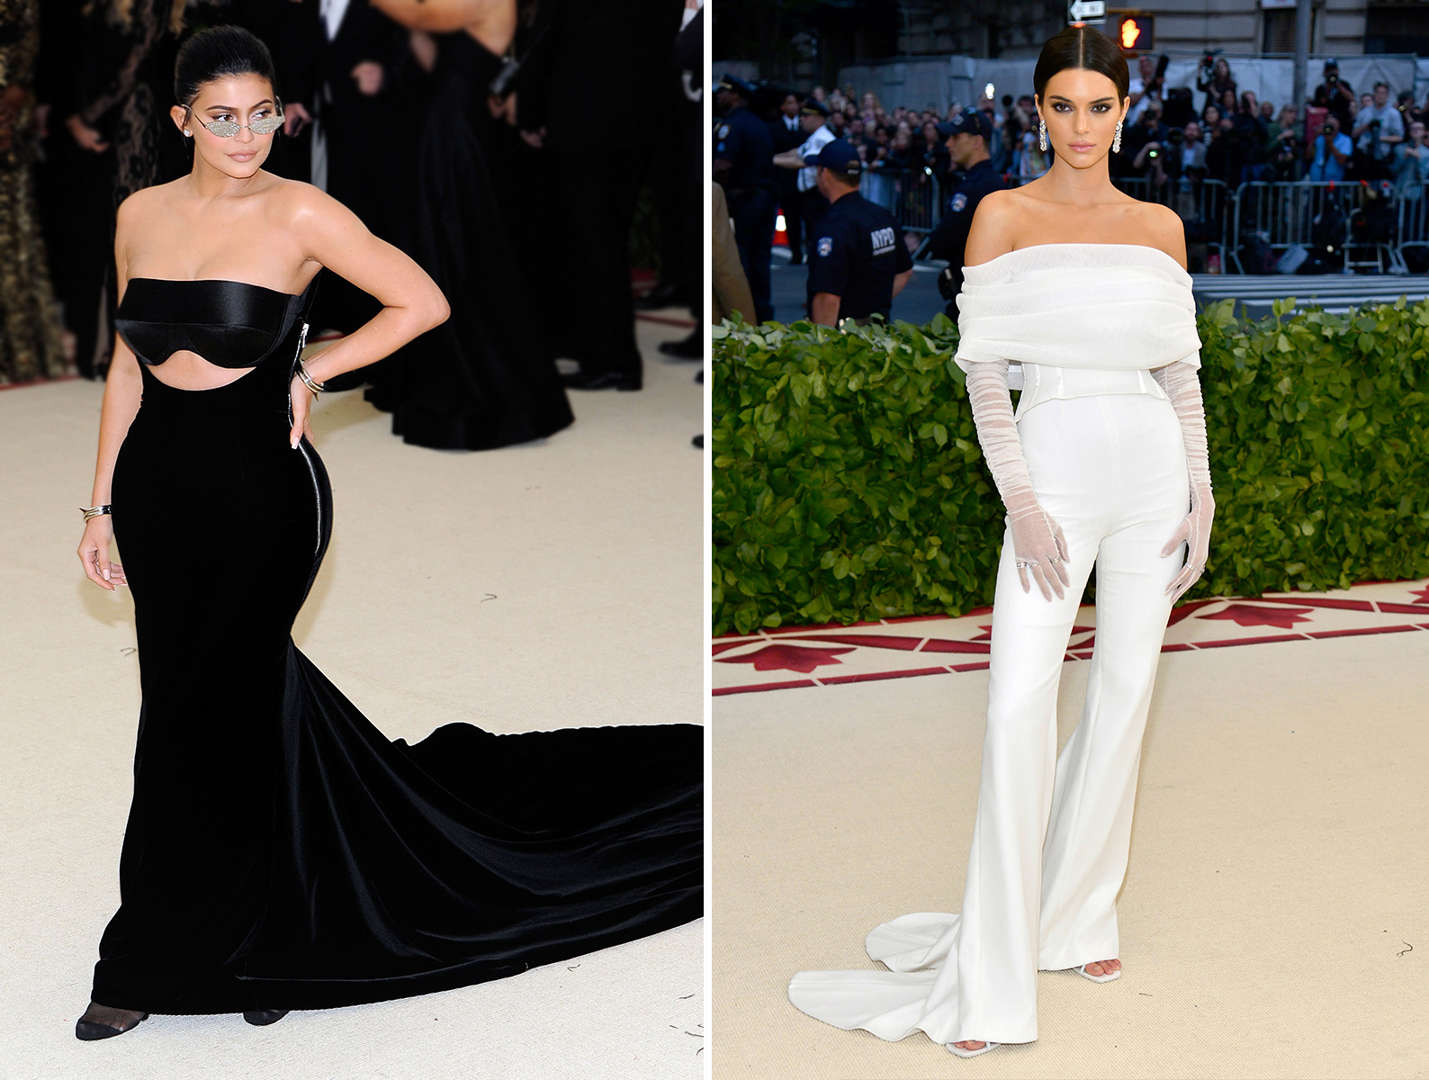 0cca9b73 Kendall and Kylie Jenner's memorable fashion moments